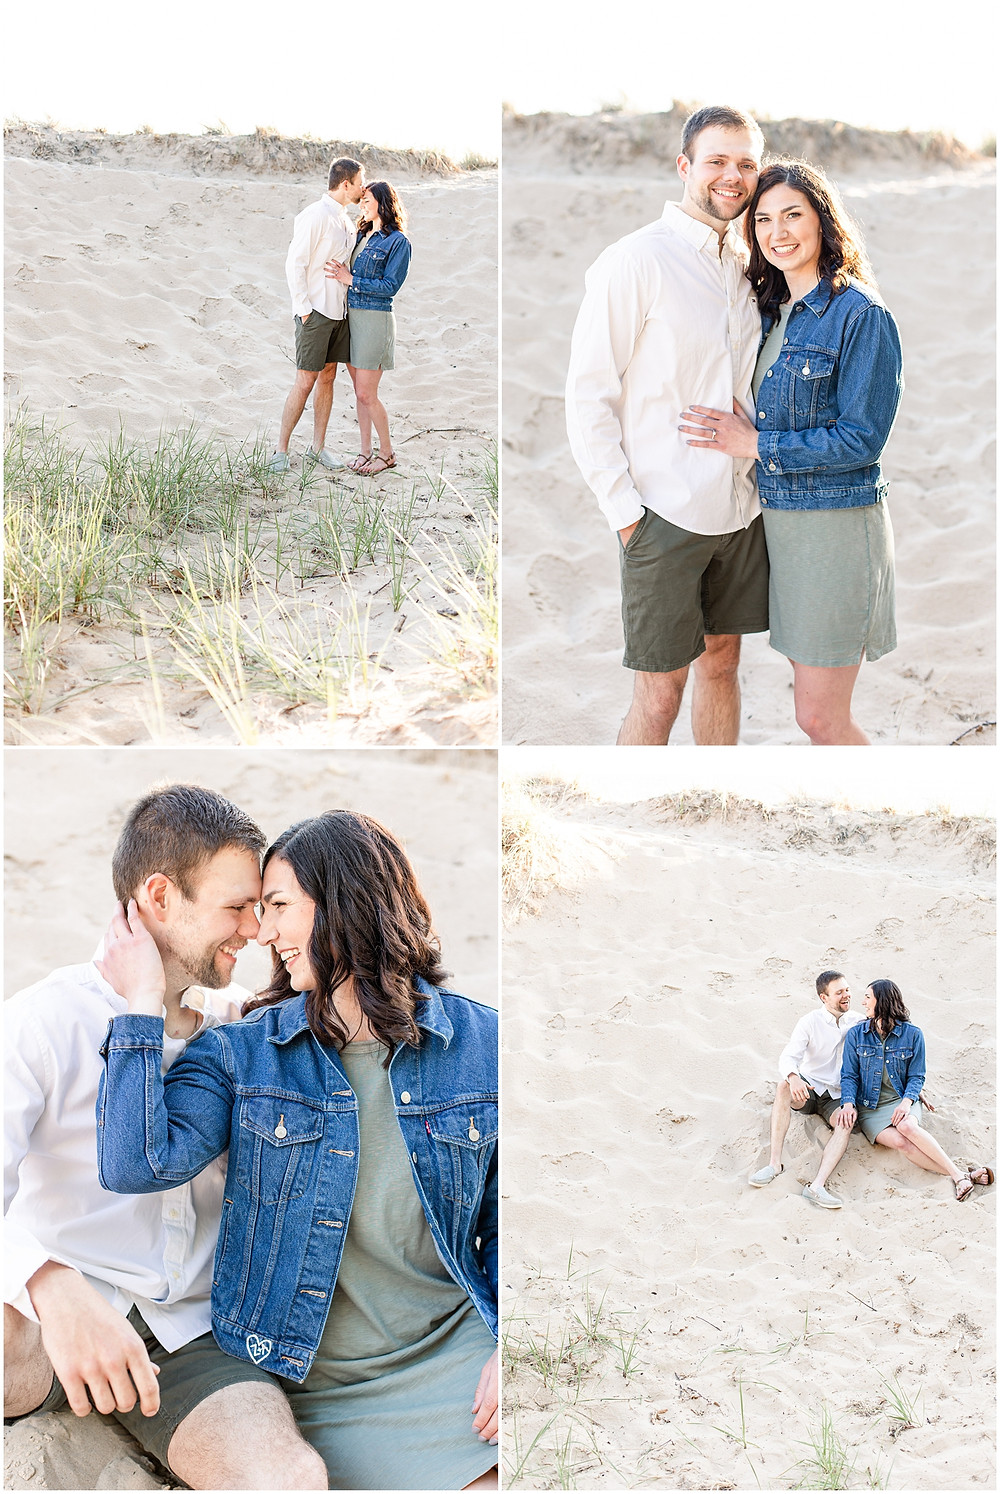 Josh and Andrea wedding photography husband and wife photographer team michigan pictures Lake Harbor Park engagement pictures session photo shoot fiance beach dunes sitting